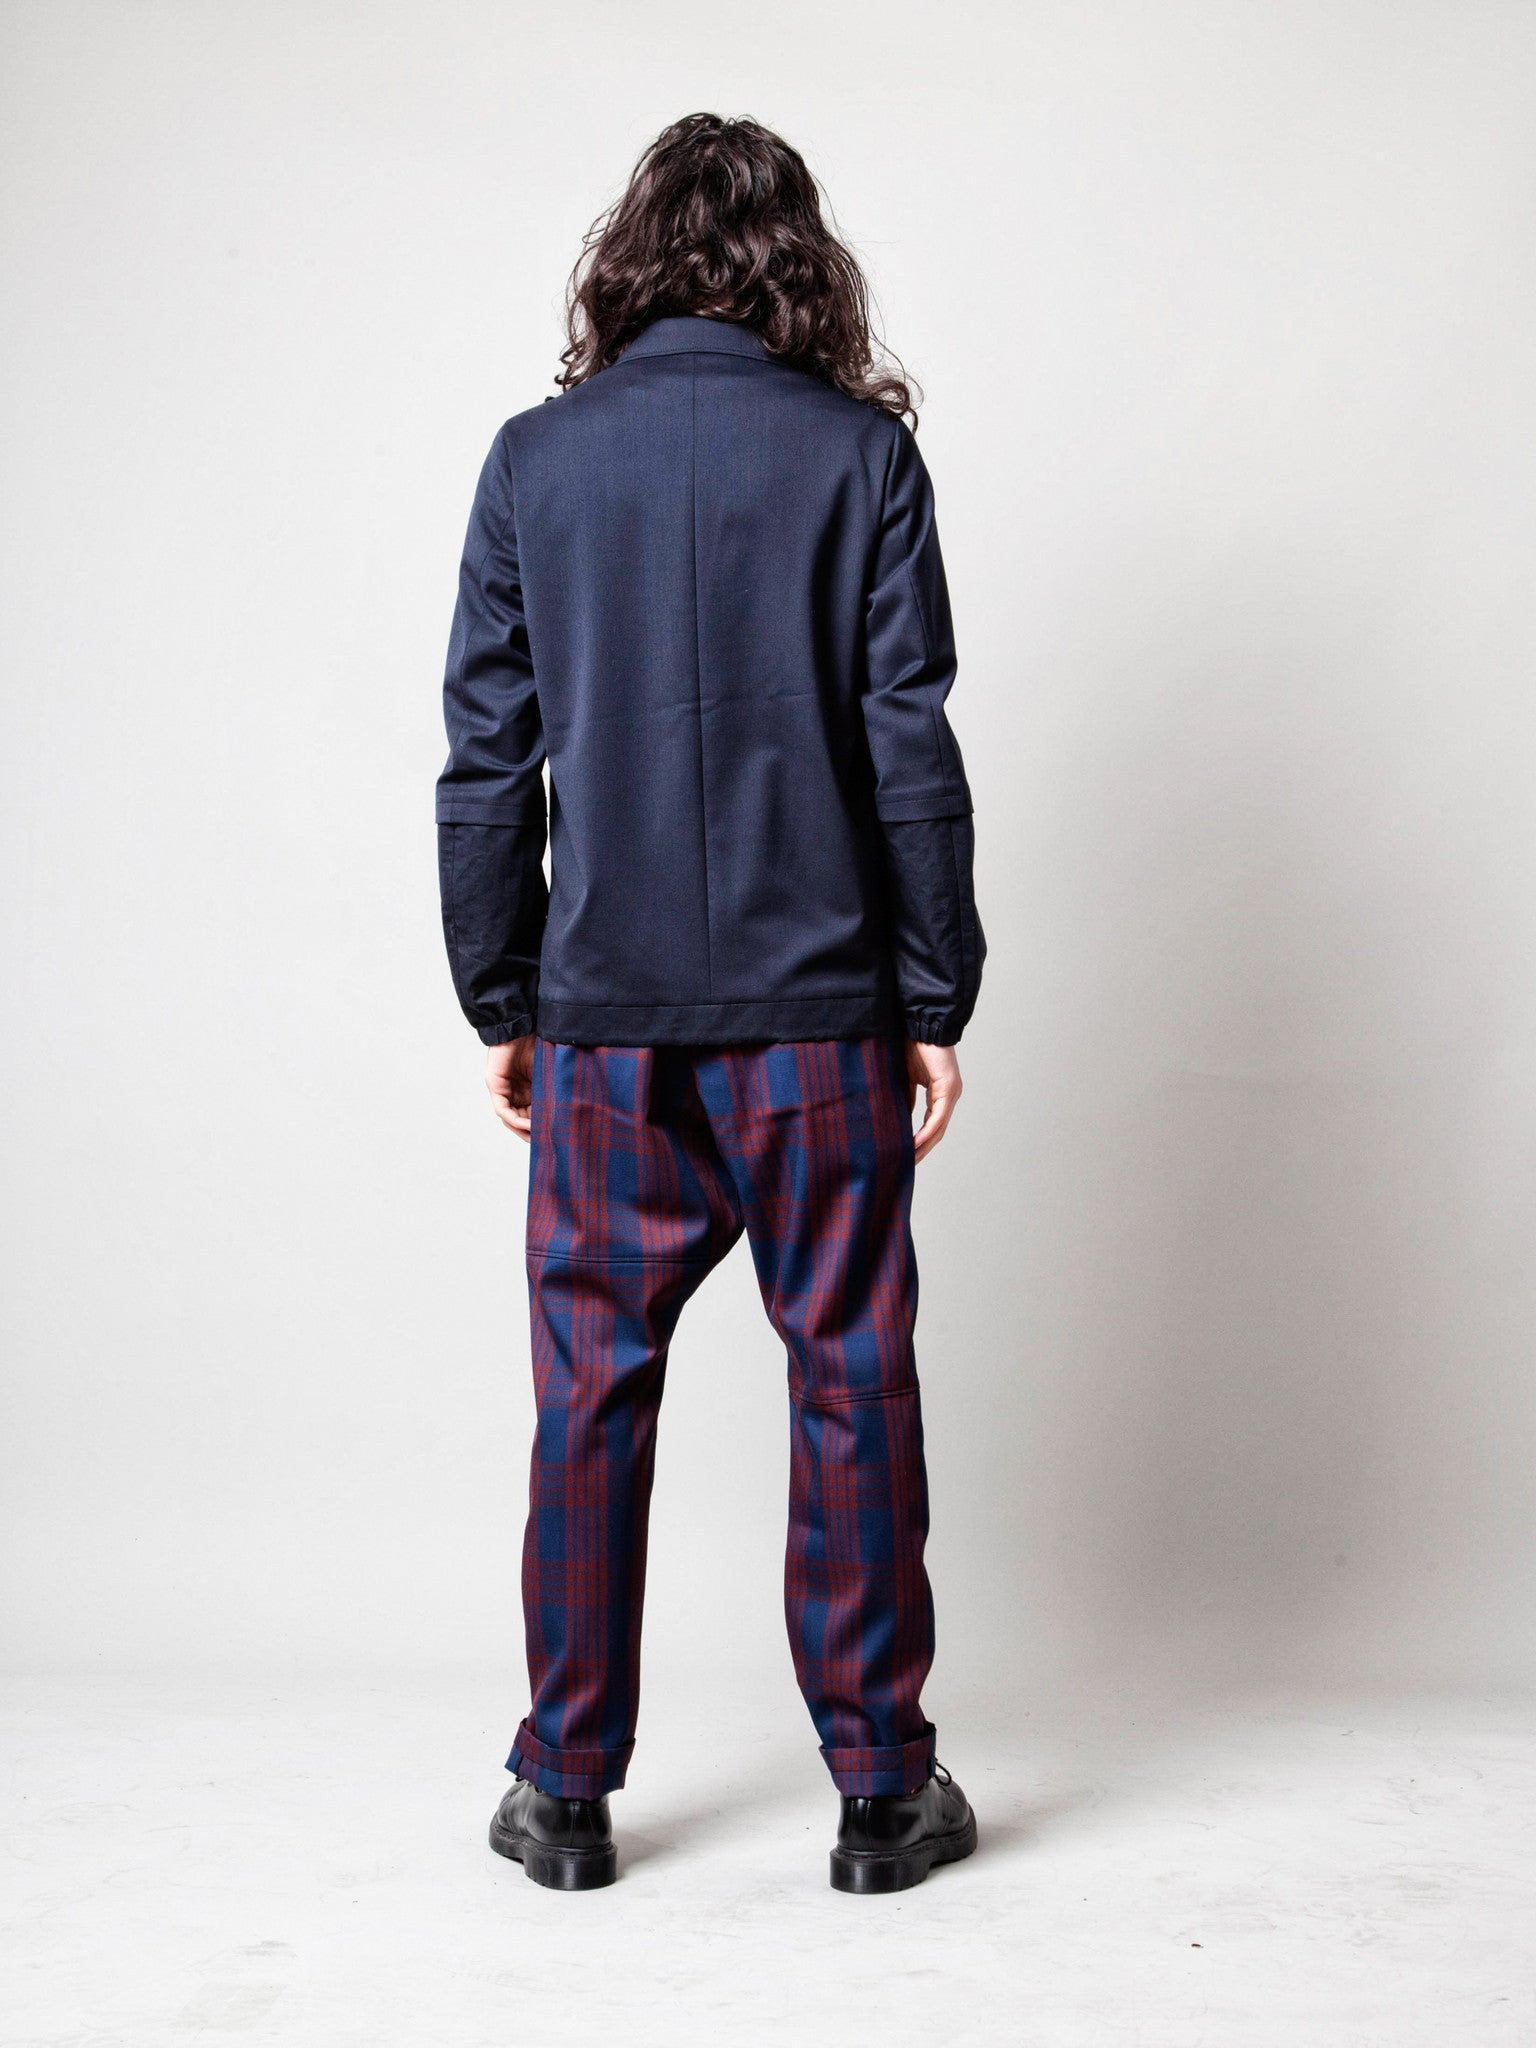 Panel Chino DC (Plaid)